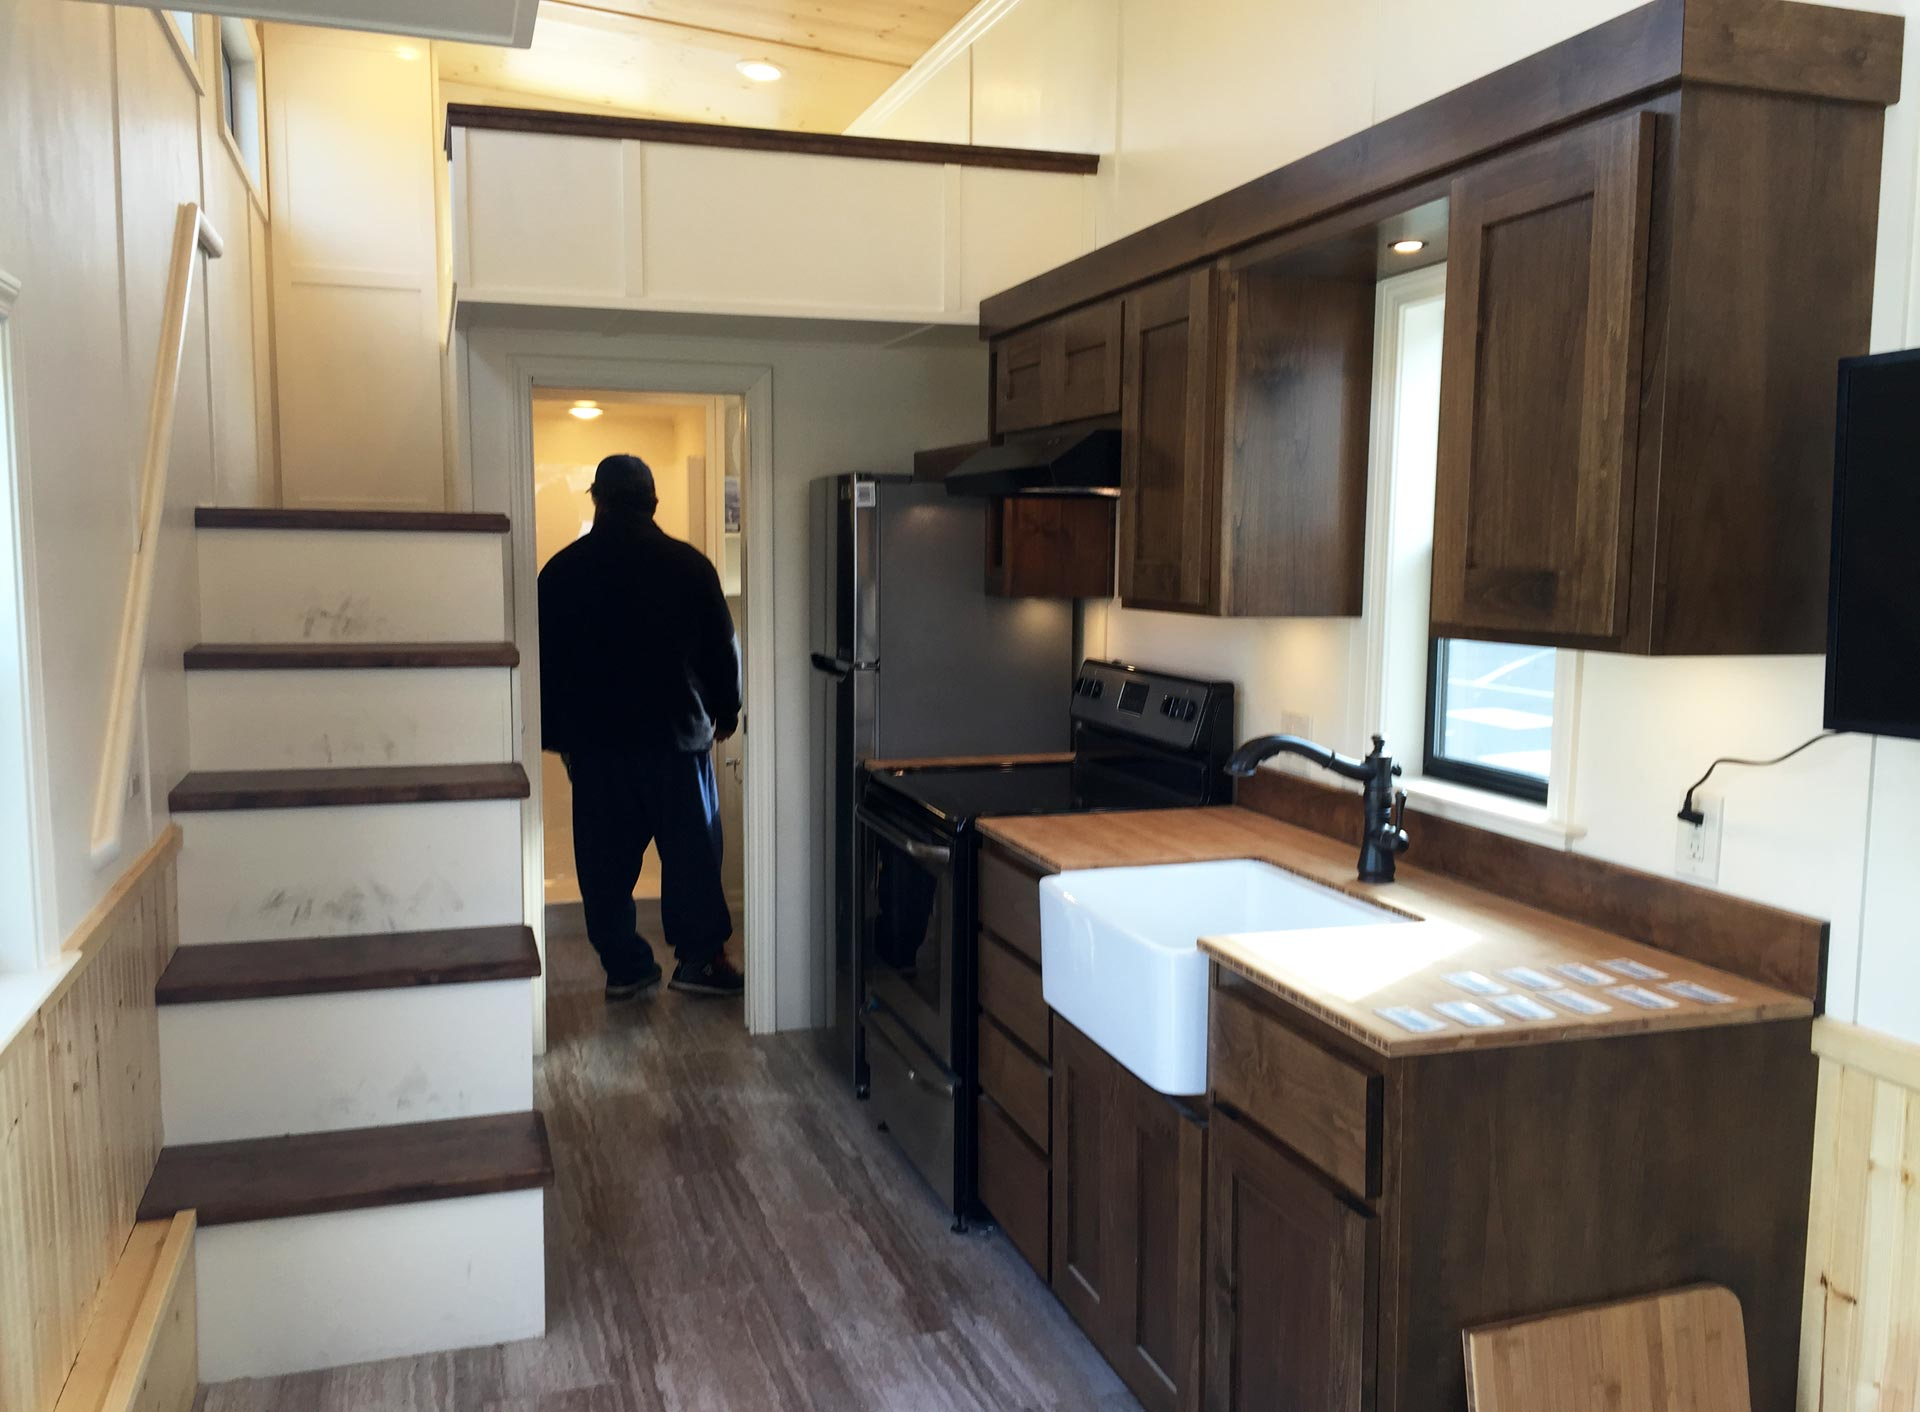 Fresno passes groundbreaking tiny house rules the for Tiny houses interior